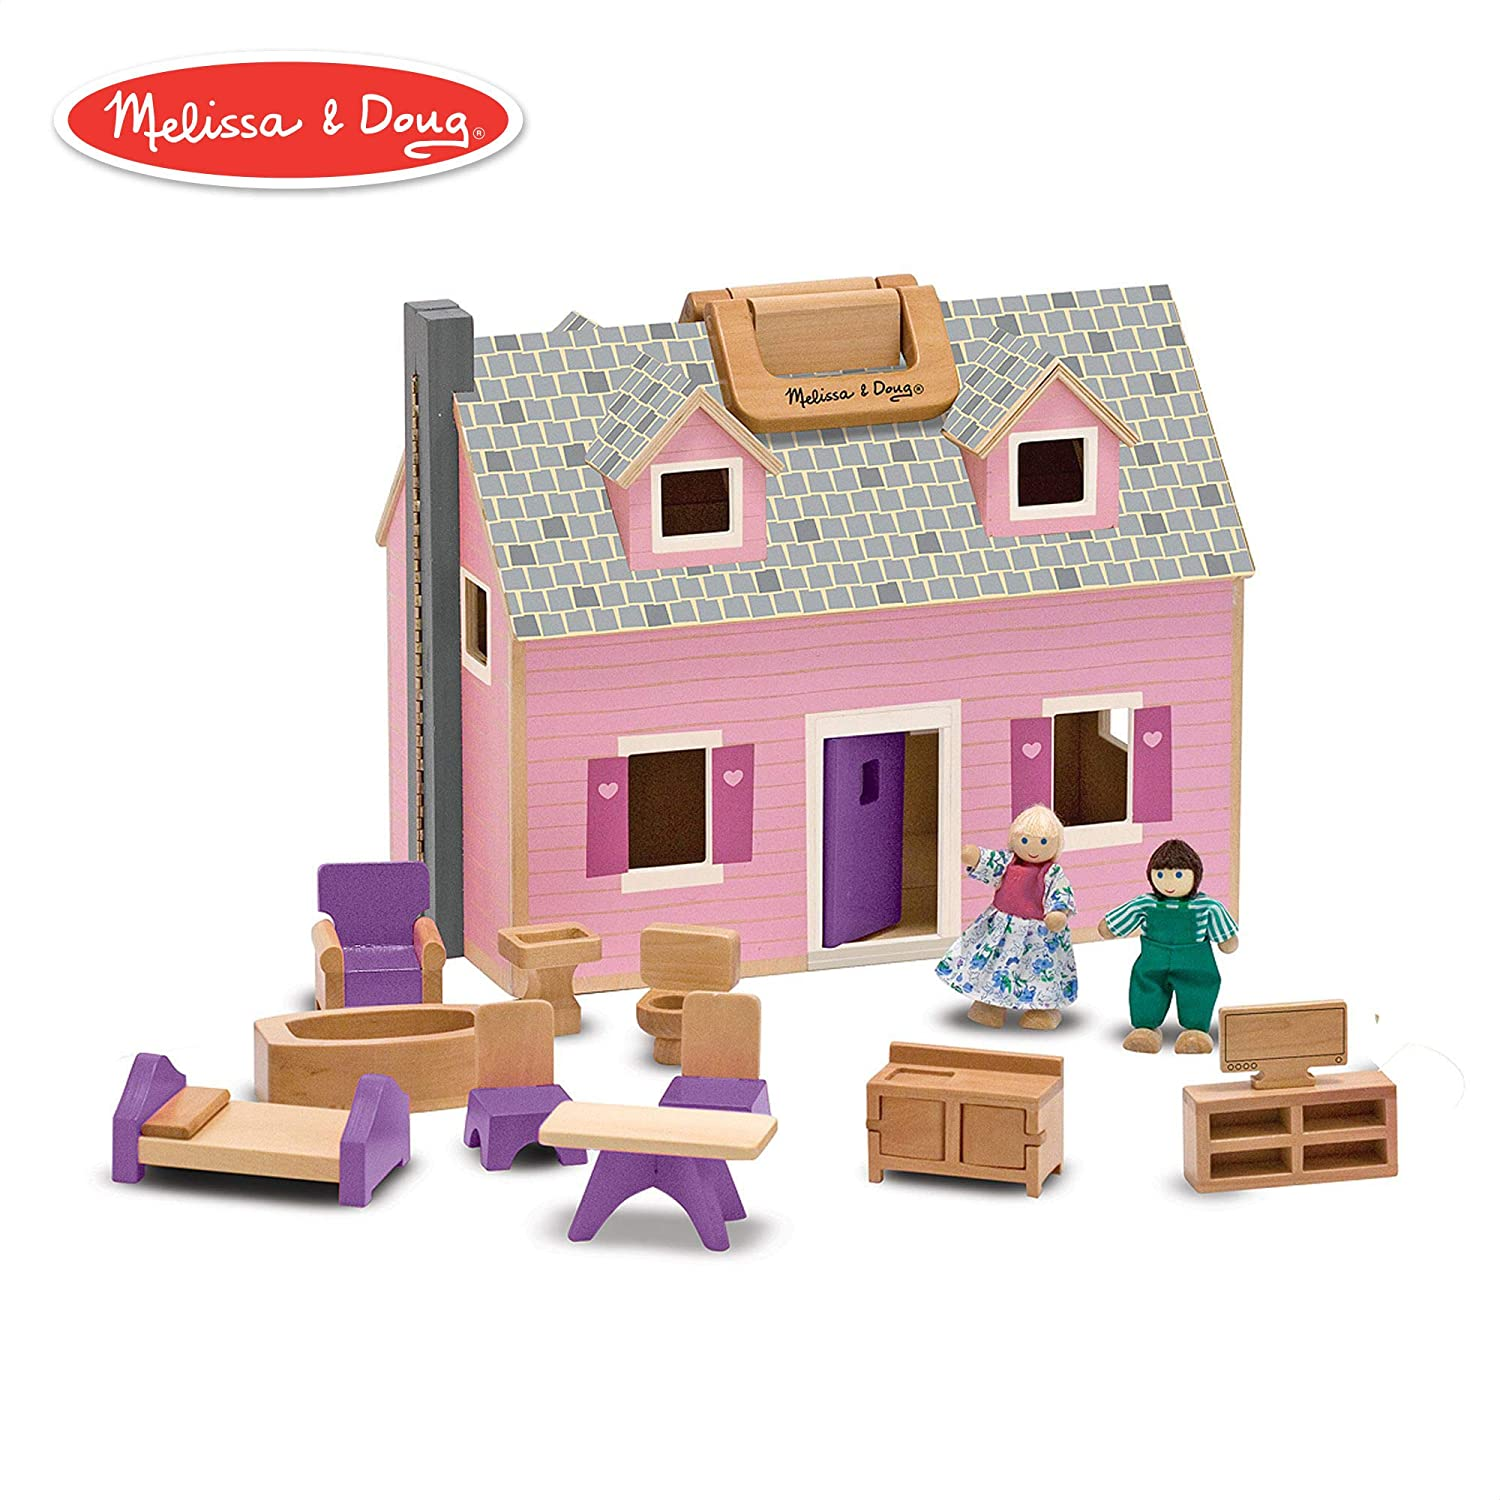 Top 9 Best Dollhouse for Toddlers Reviews in 2019 2